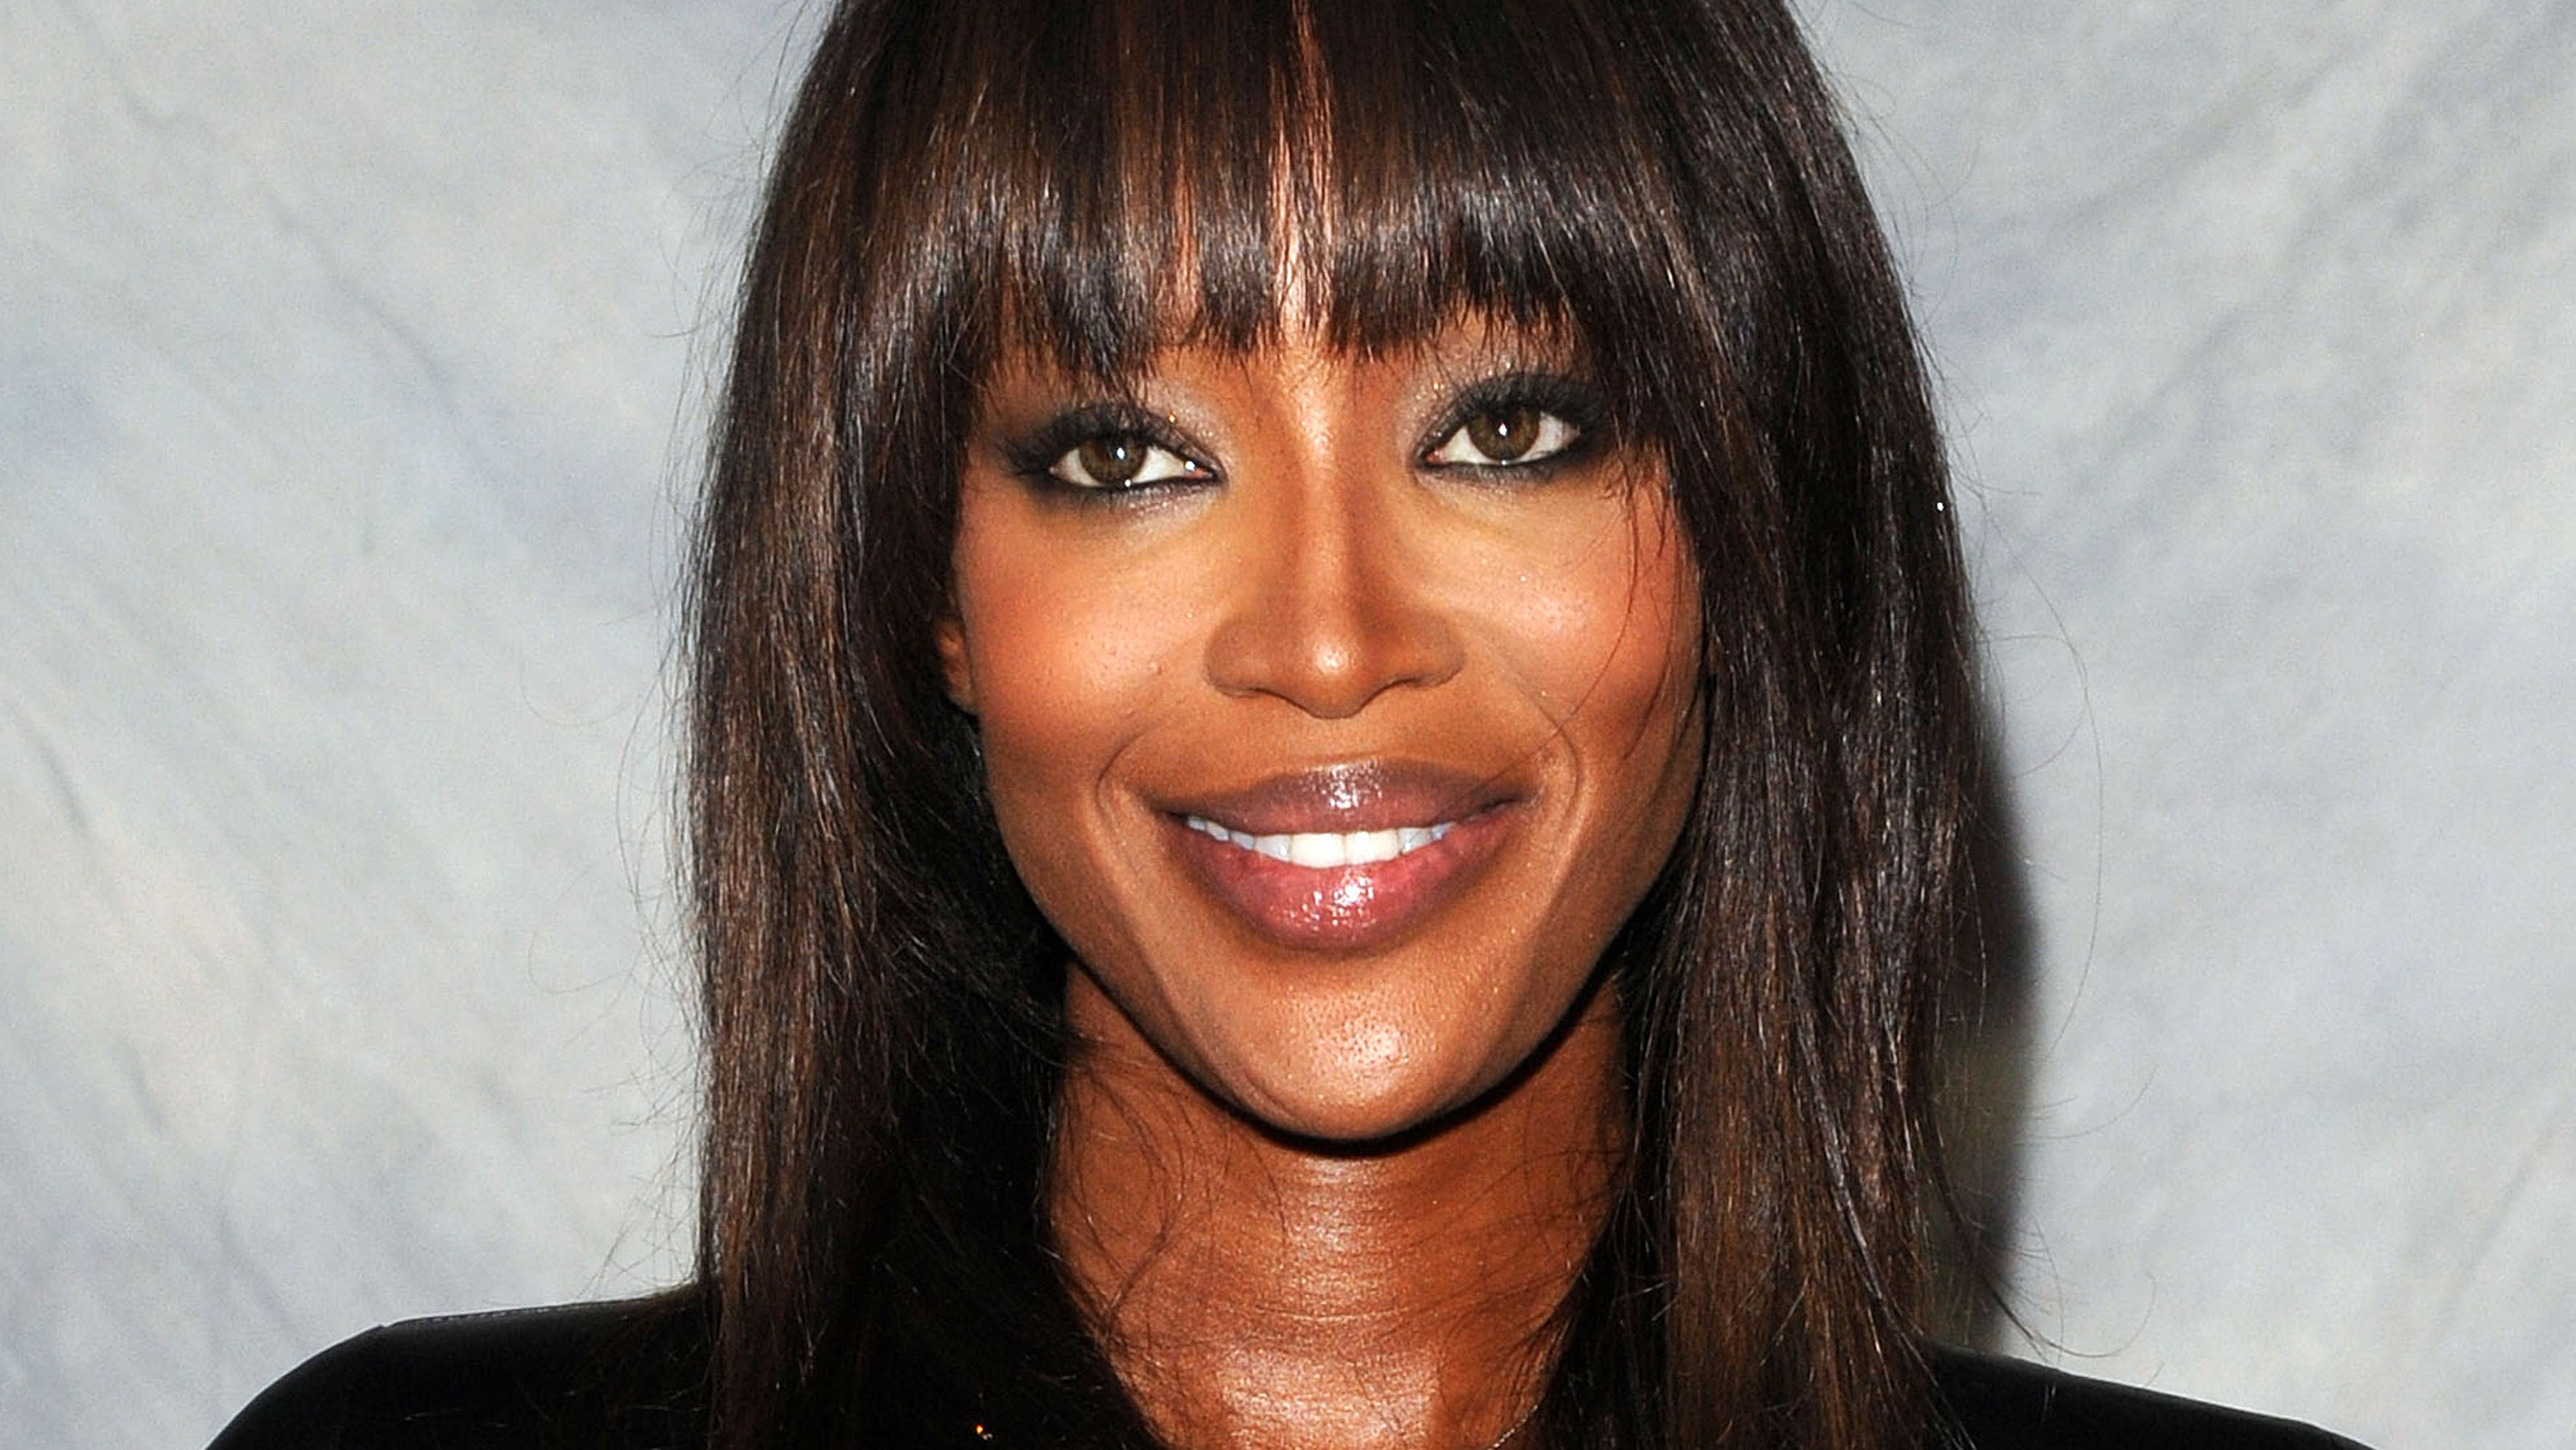 Naomi Campbell | Source: Shutterstock